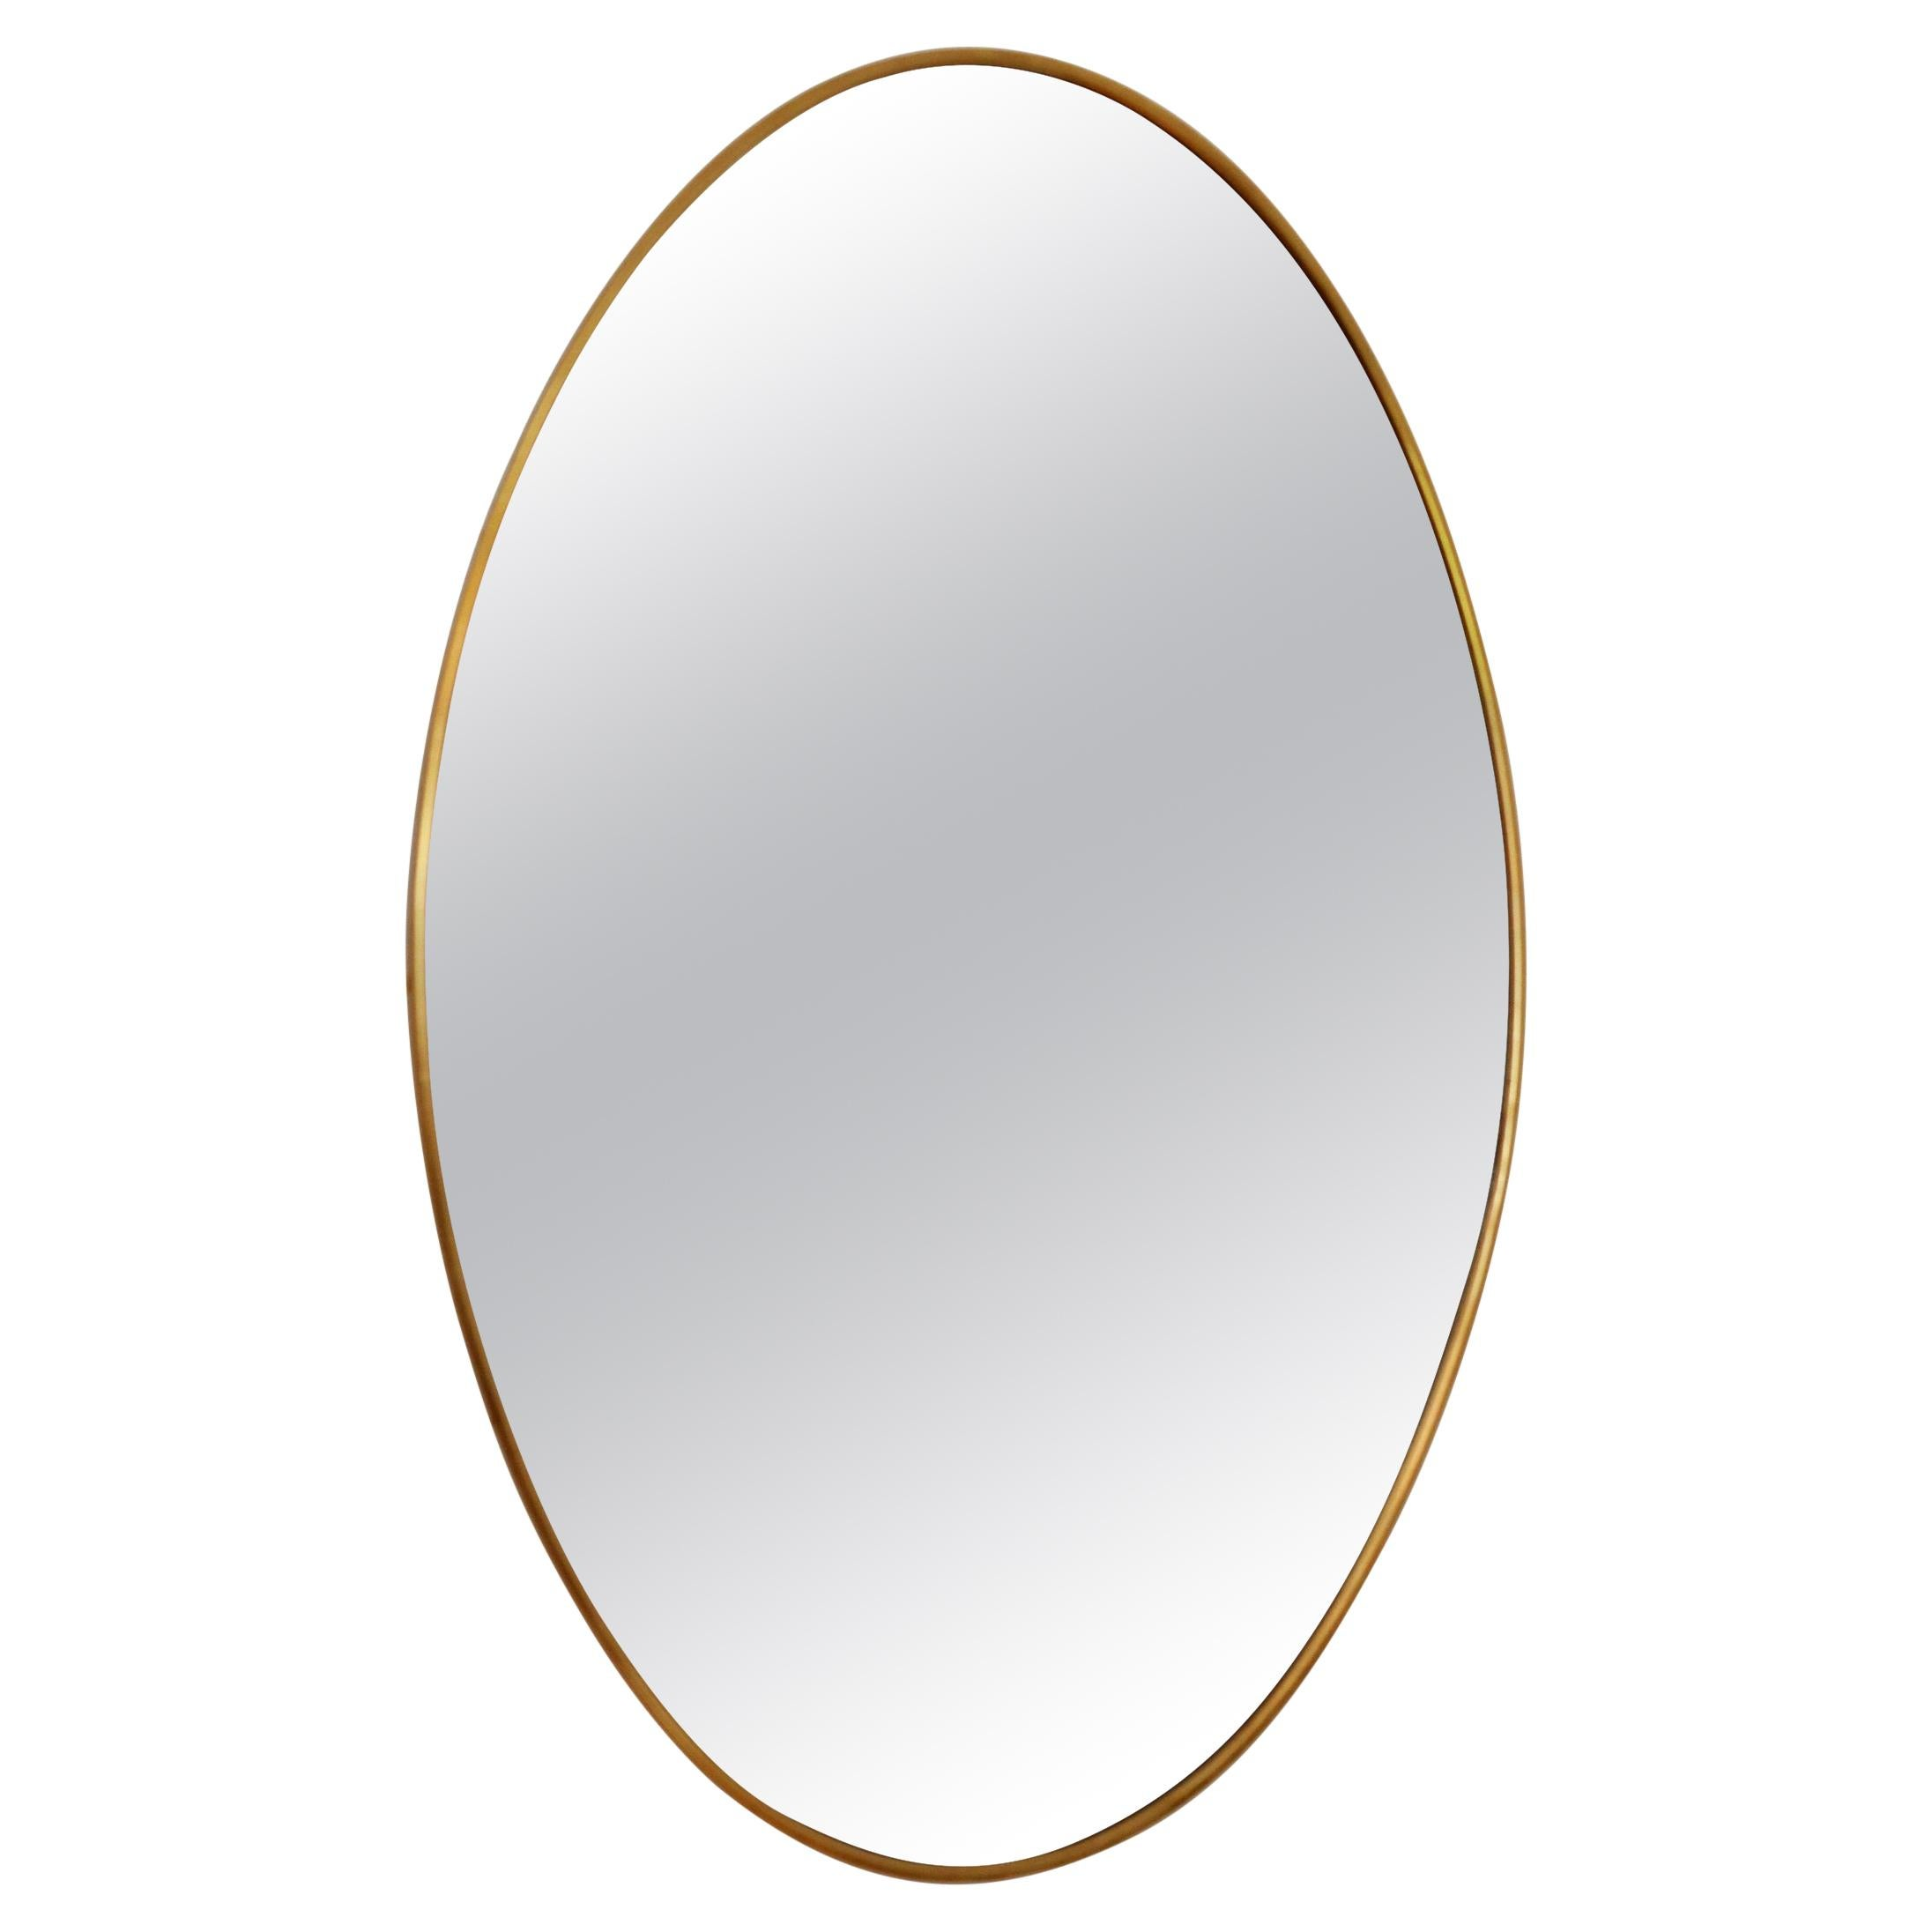 Italian Midcentury Wall Mirror with Brass Frame, 1950s